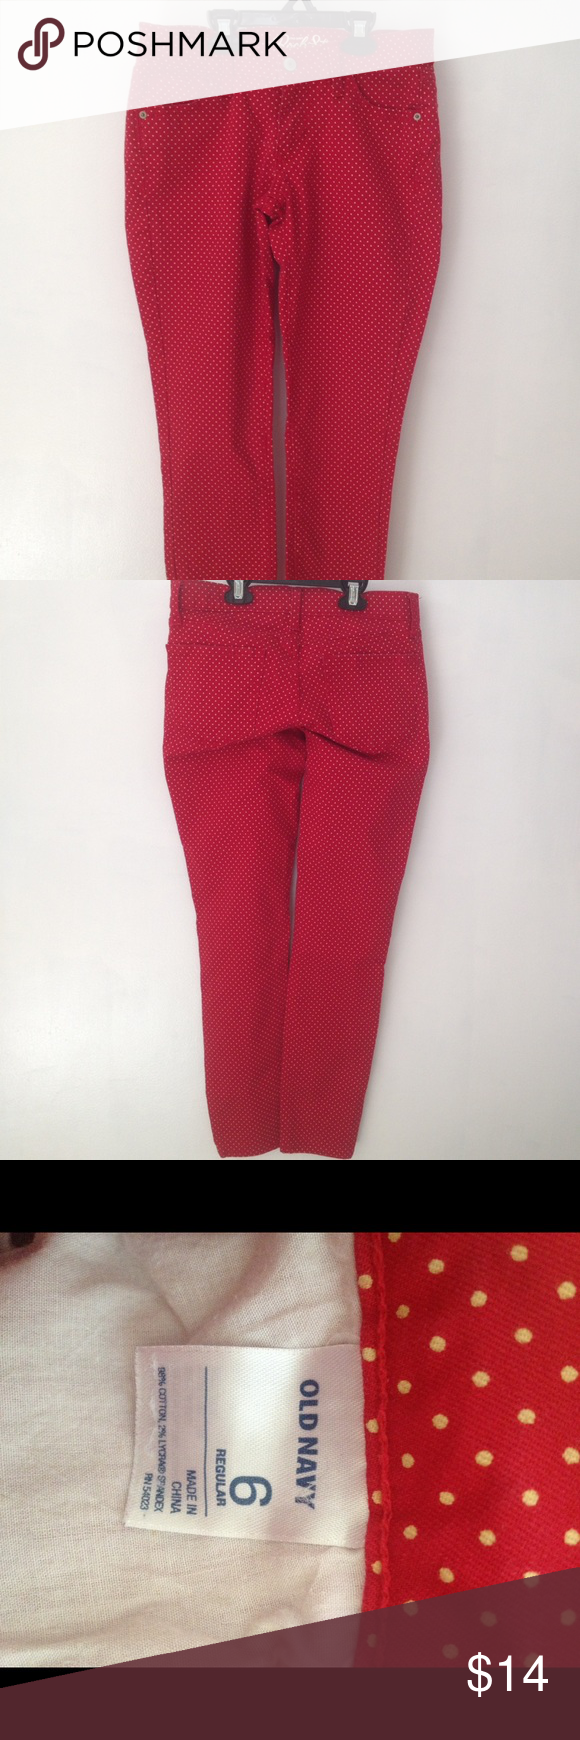 Red polka dot jeans size 6 old navy rock star jeans red with tiny red polka dot jeans size 6 old navy rock star jeans red with tiny yellow sisterspd